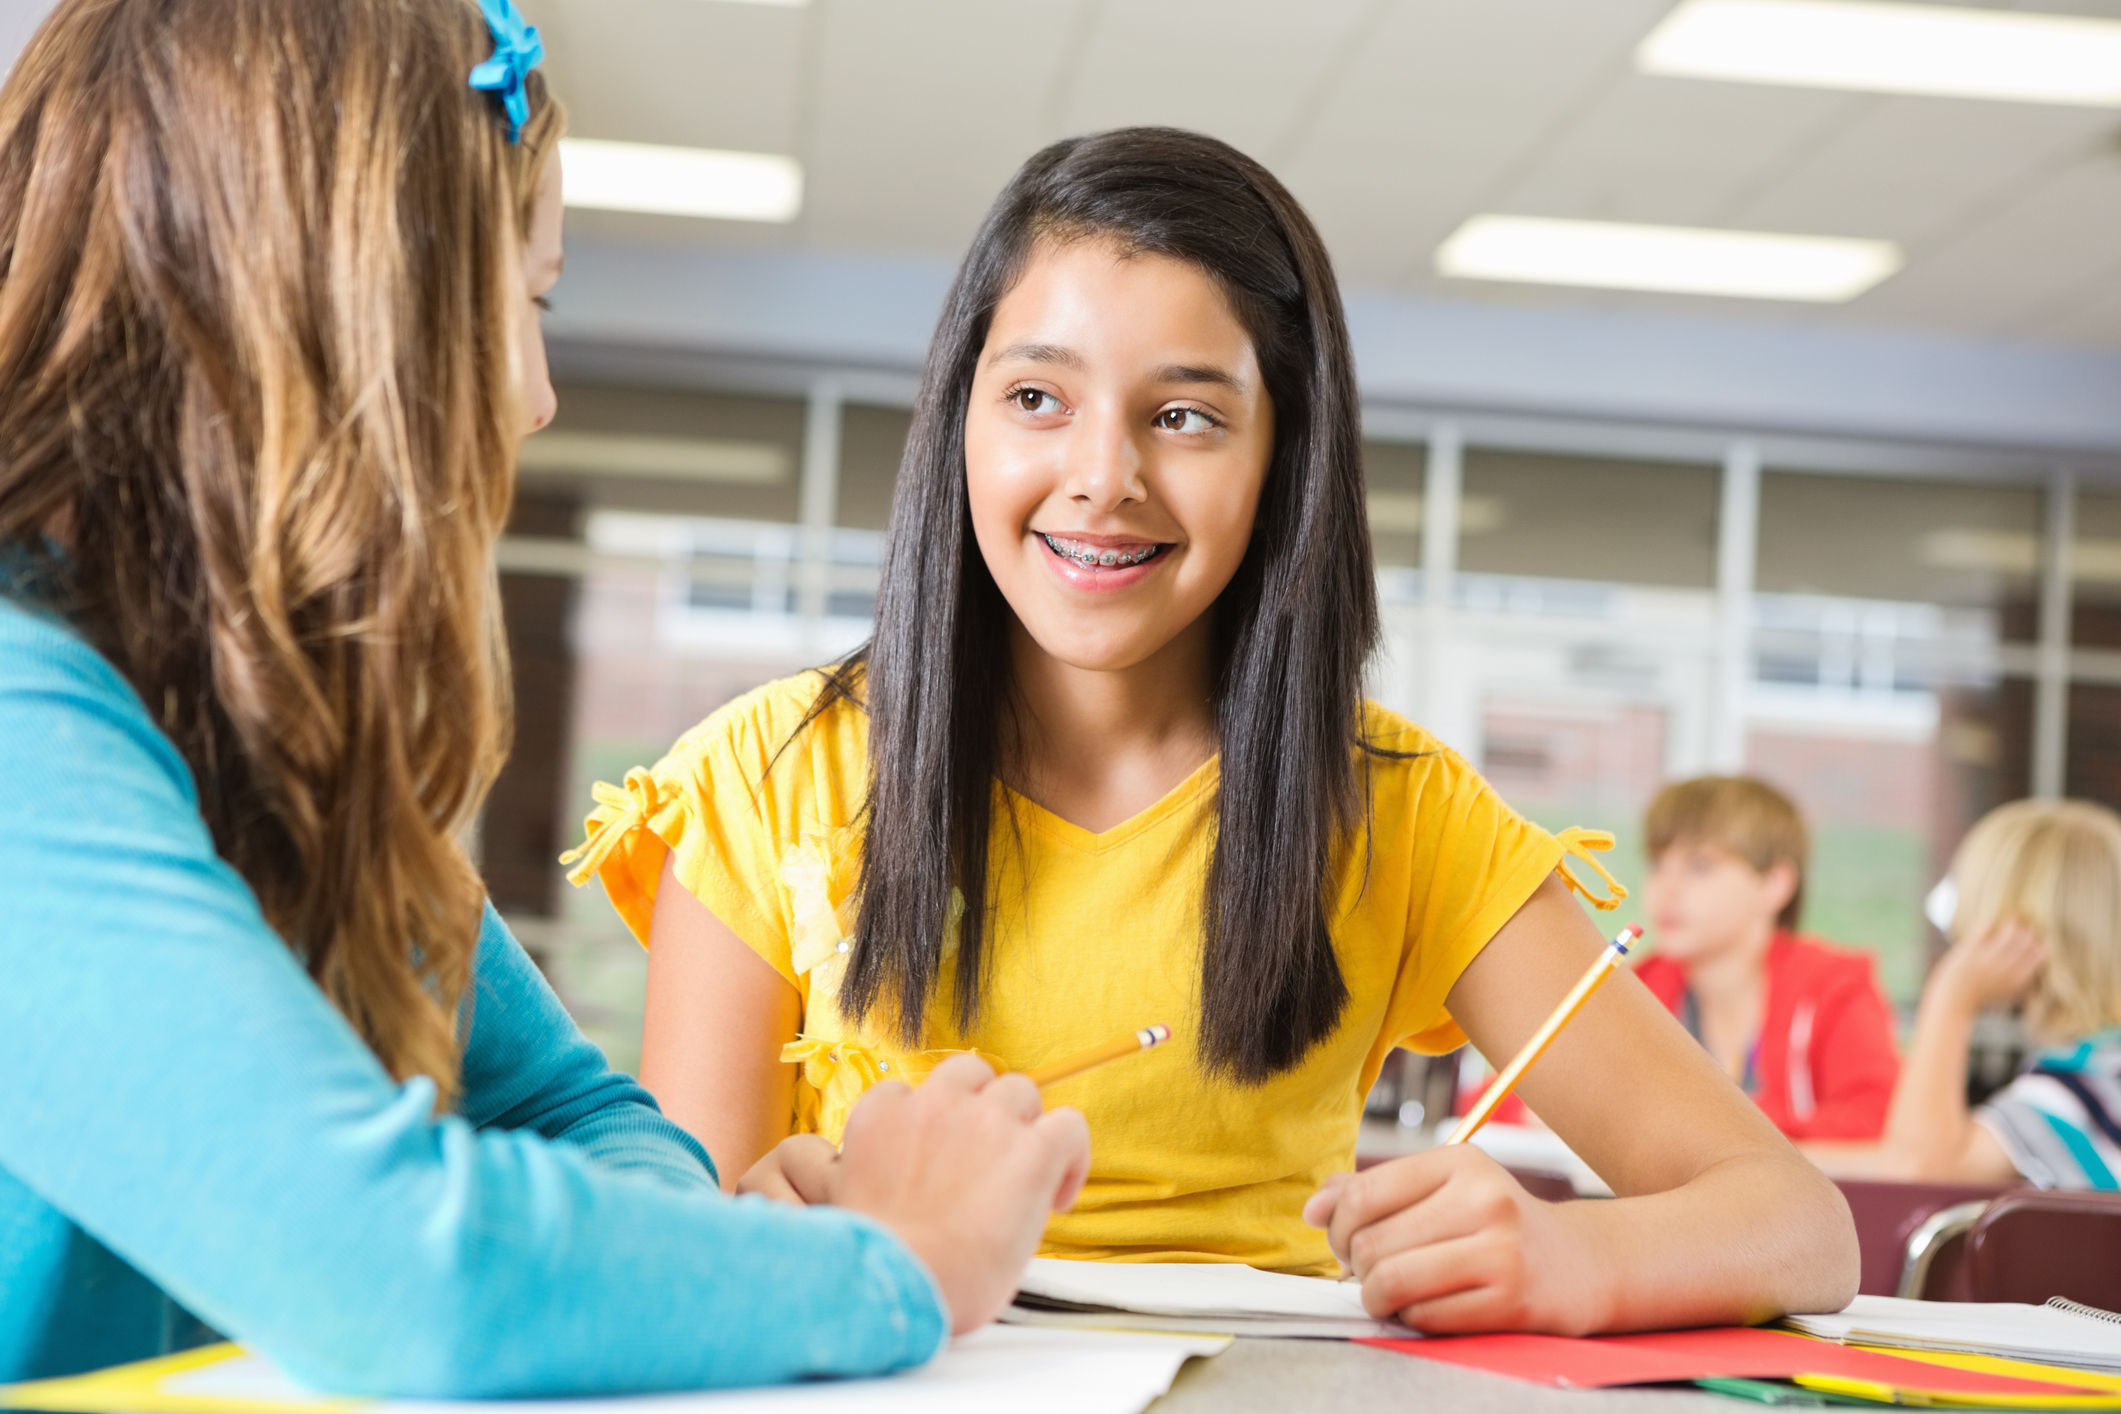 Middle school girl studying with friend in class